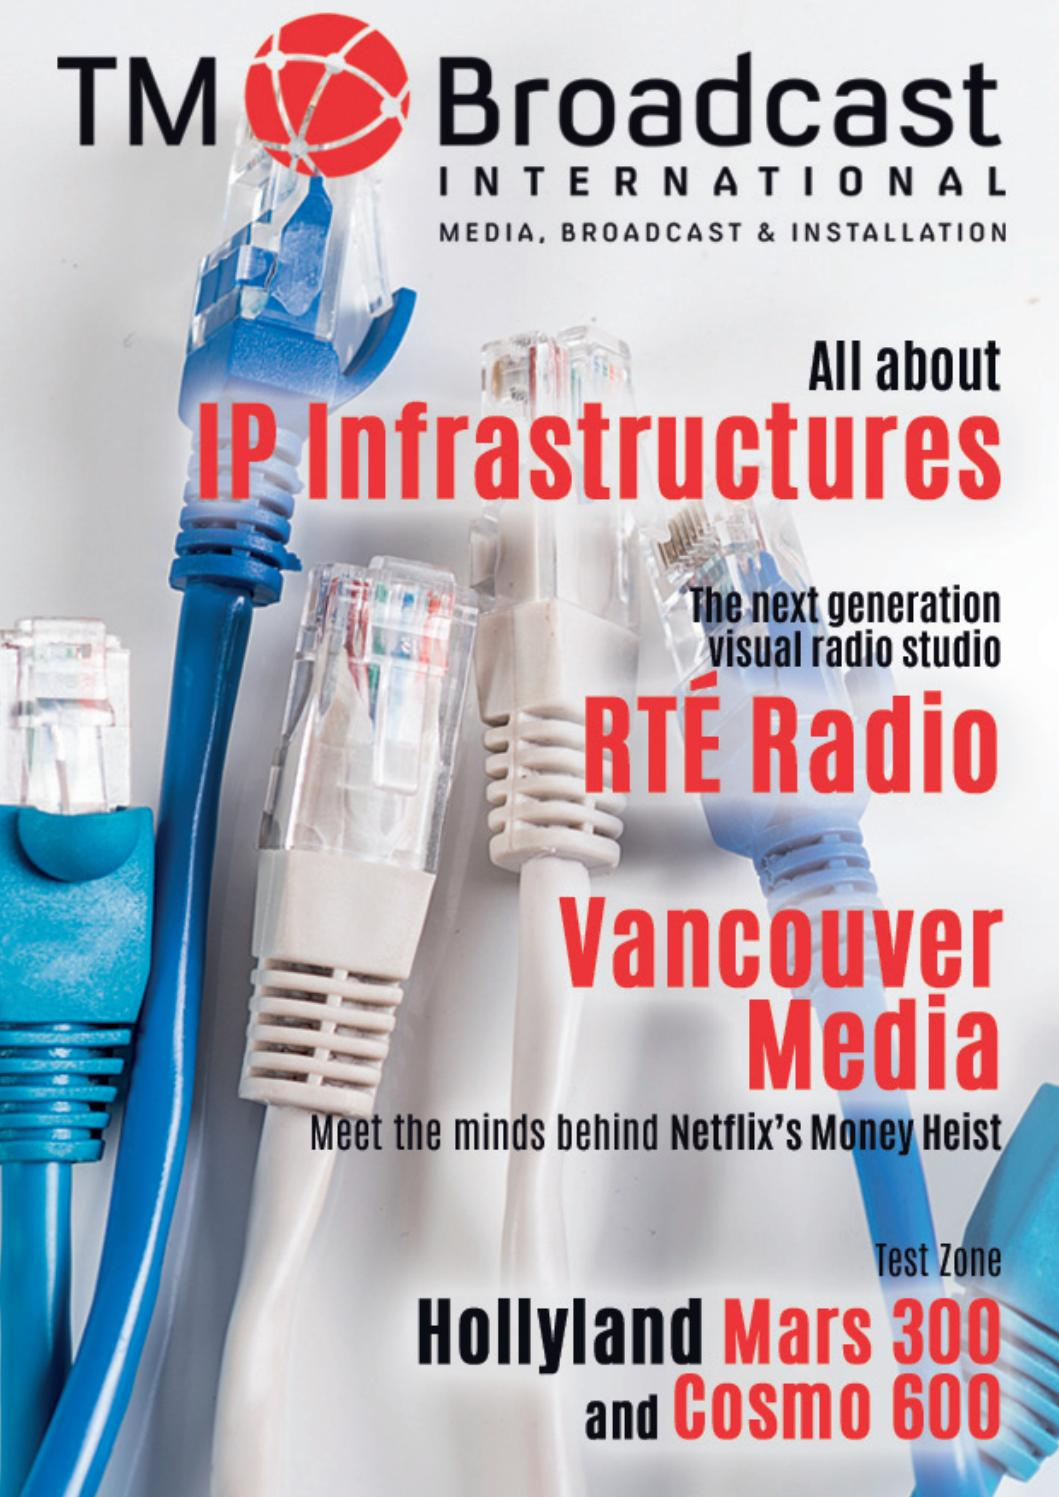 TM Broadcast International 71, July 2019 by Daro - issuu